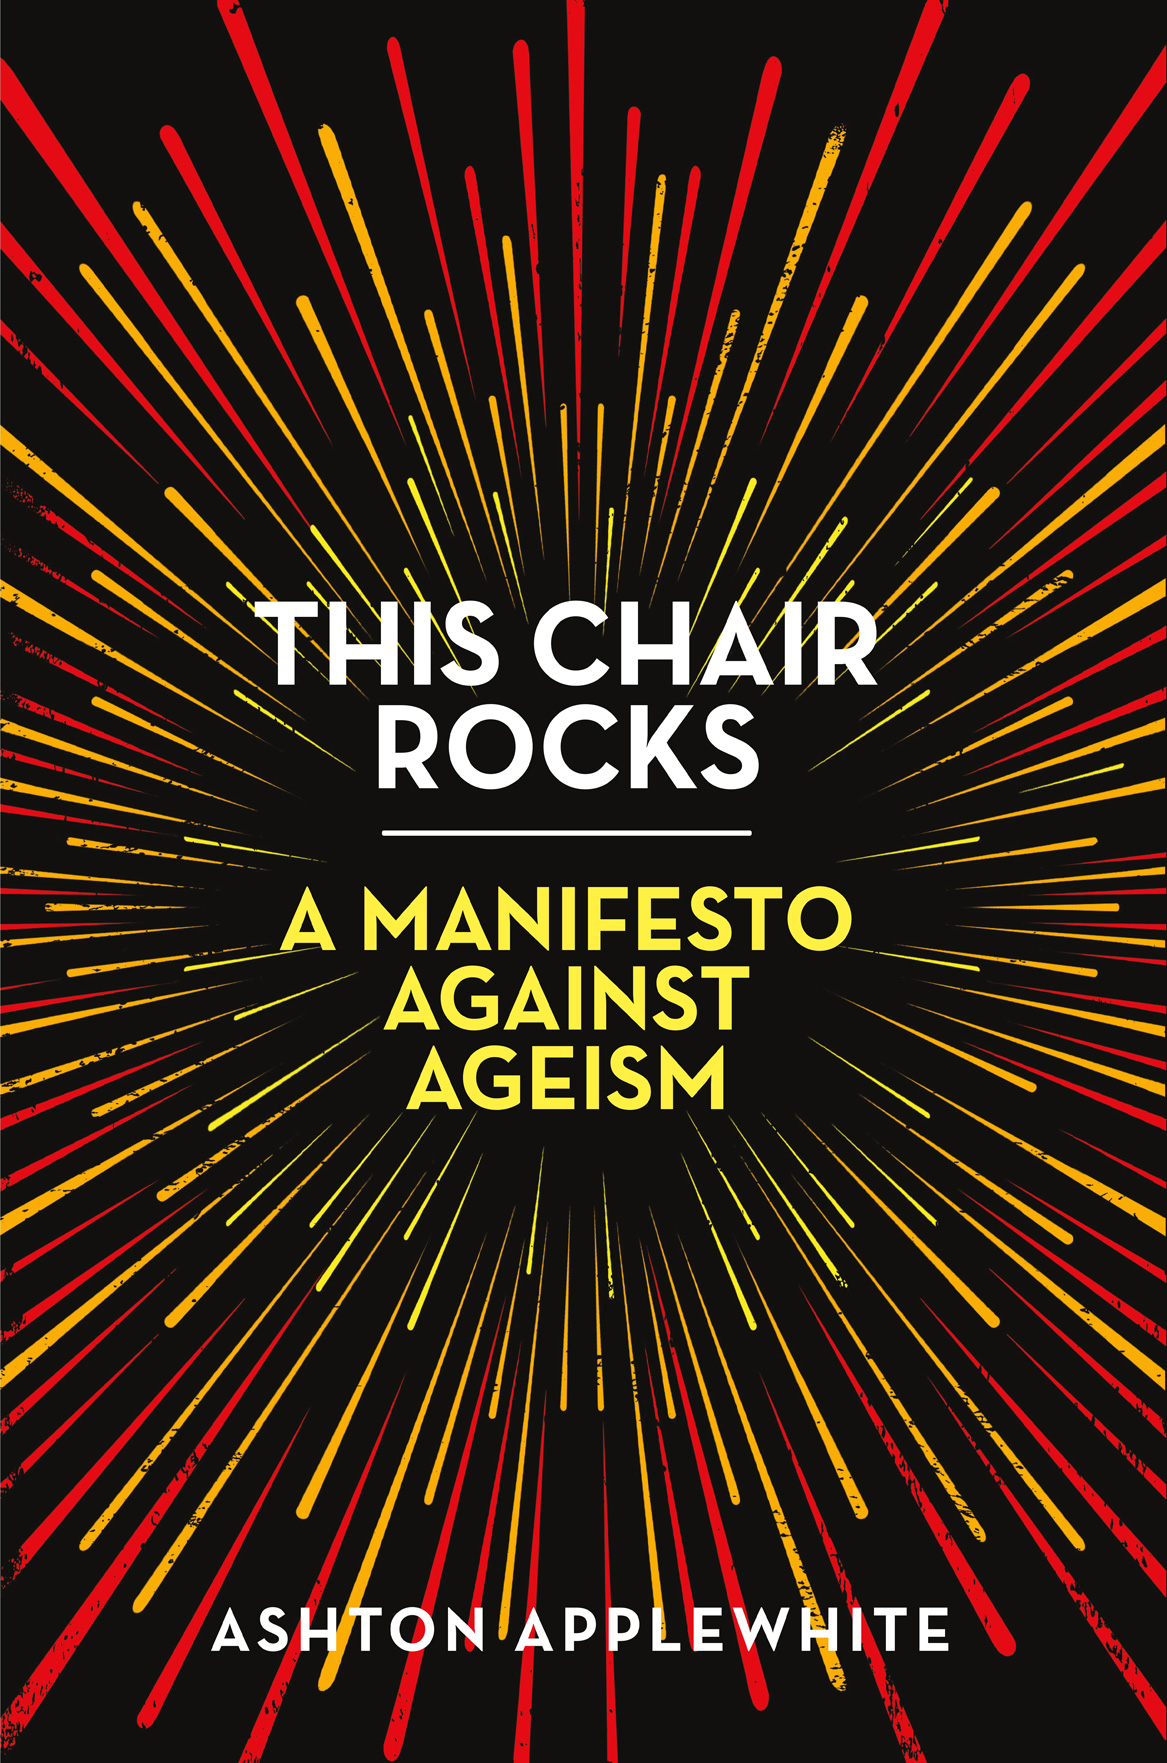 Win a copy of This Chair Rocks!